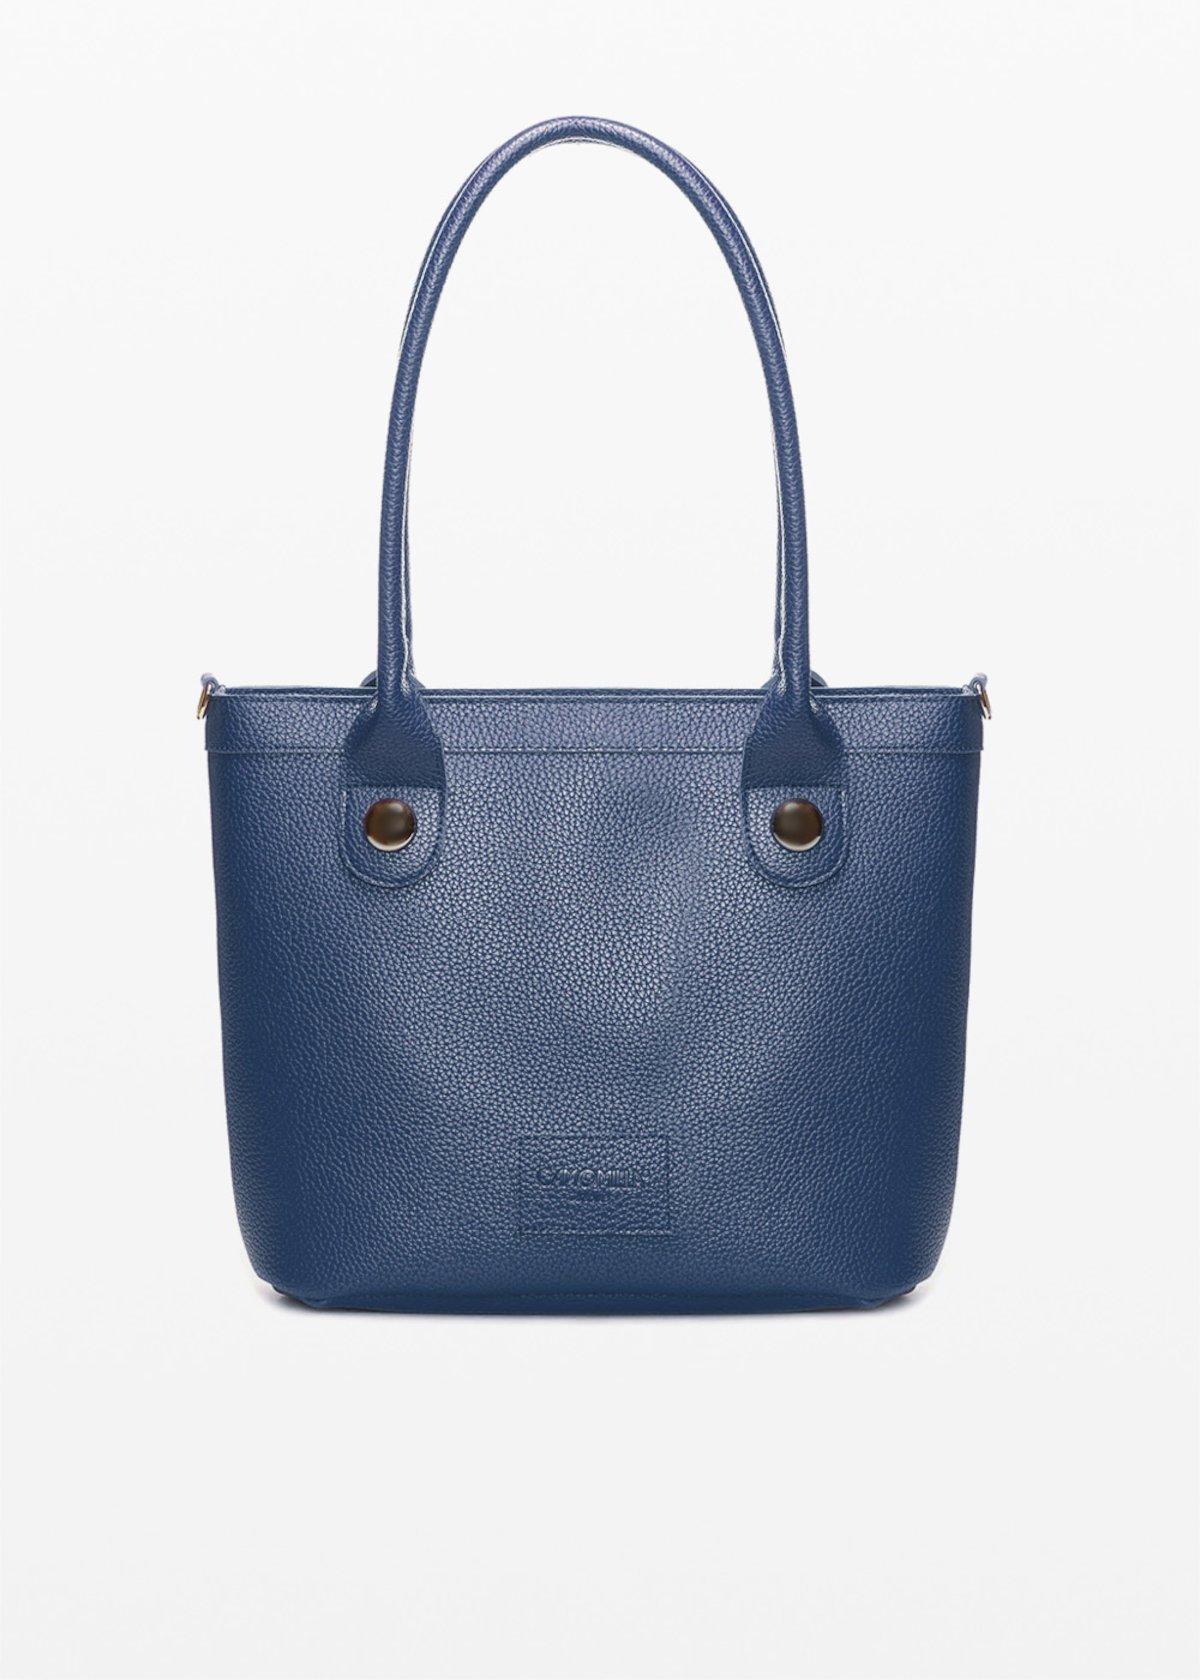 Baggy faux leather bag with metal details - Medium Blue - Woman - Category image